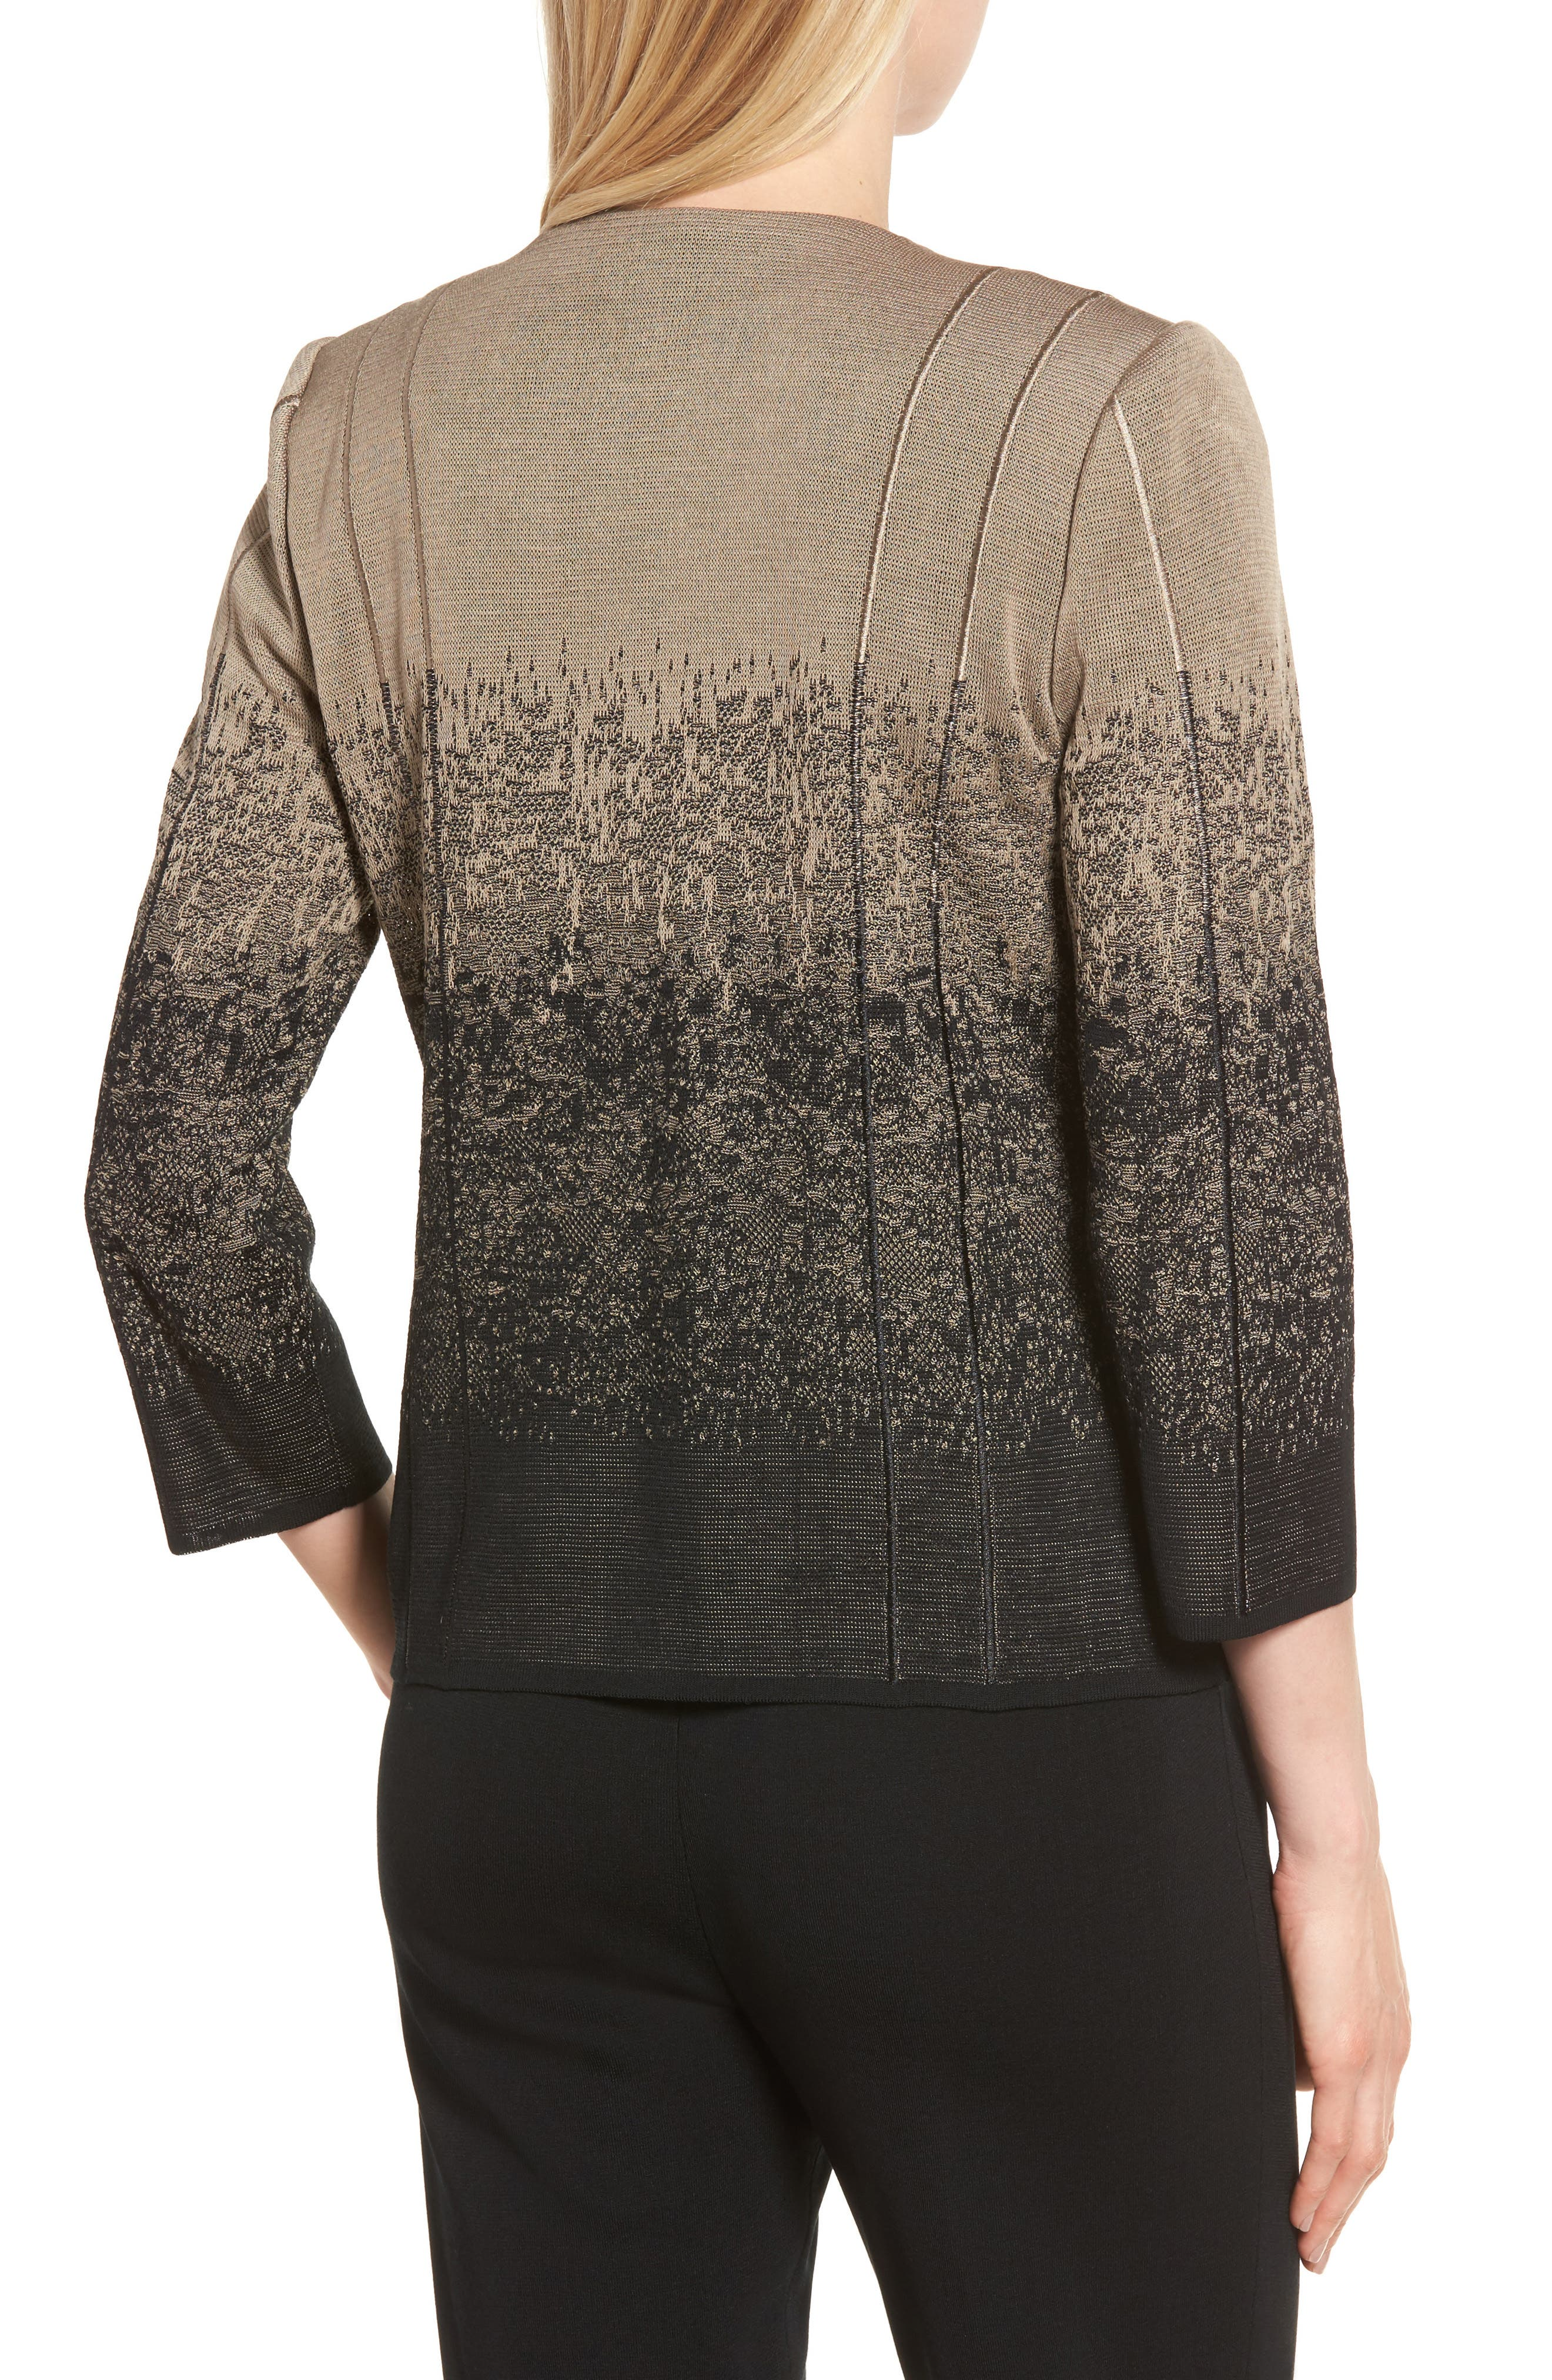 Jacquard Knit Jacket,                             Alternate thumbnail 2, color,                             250